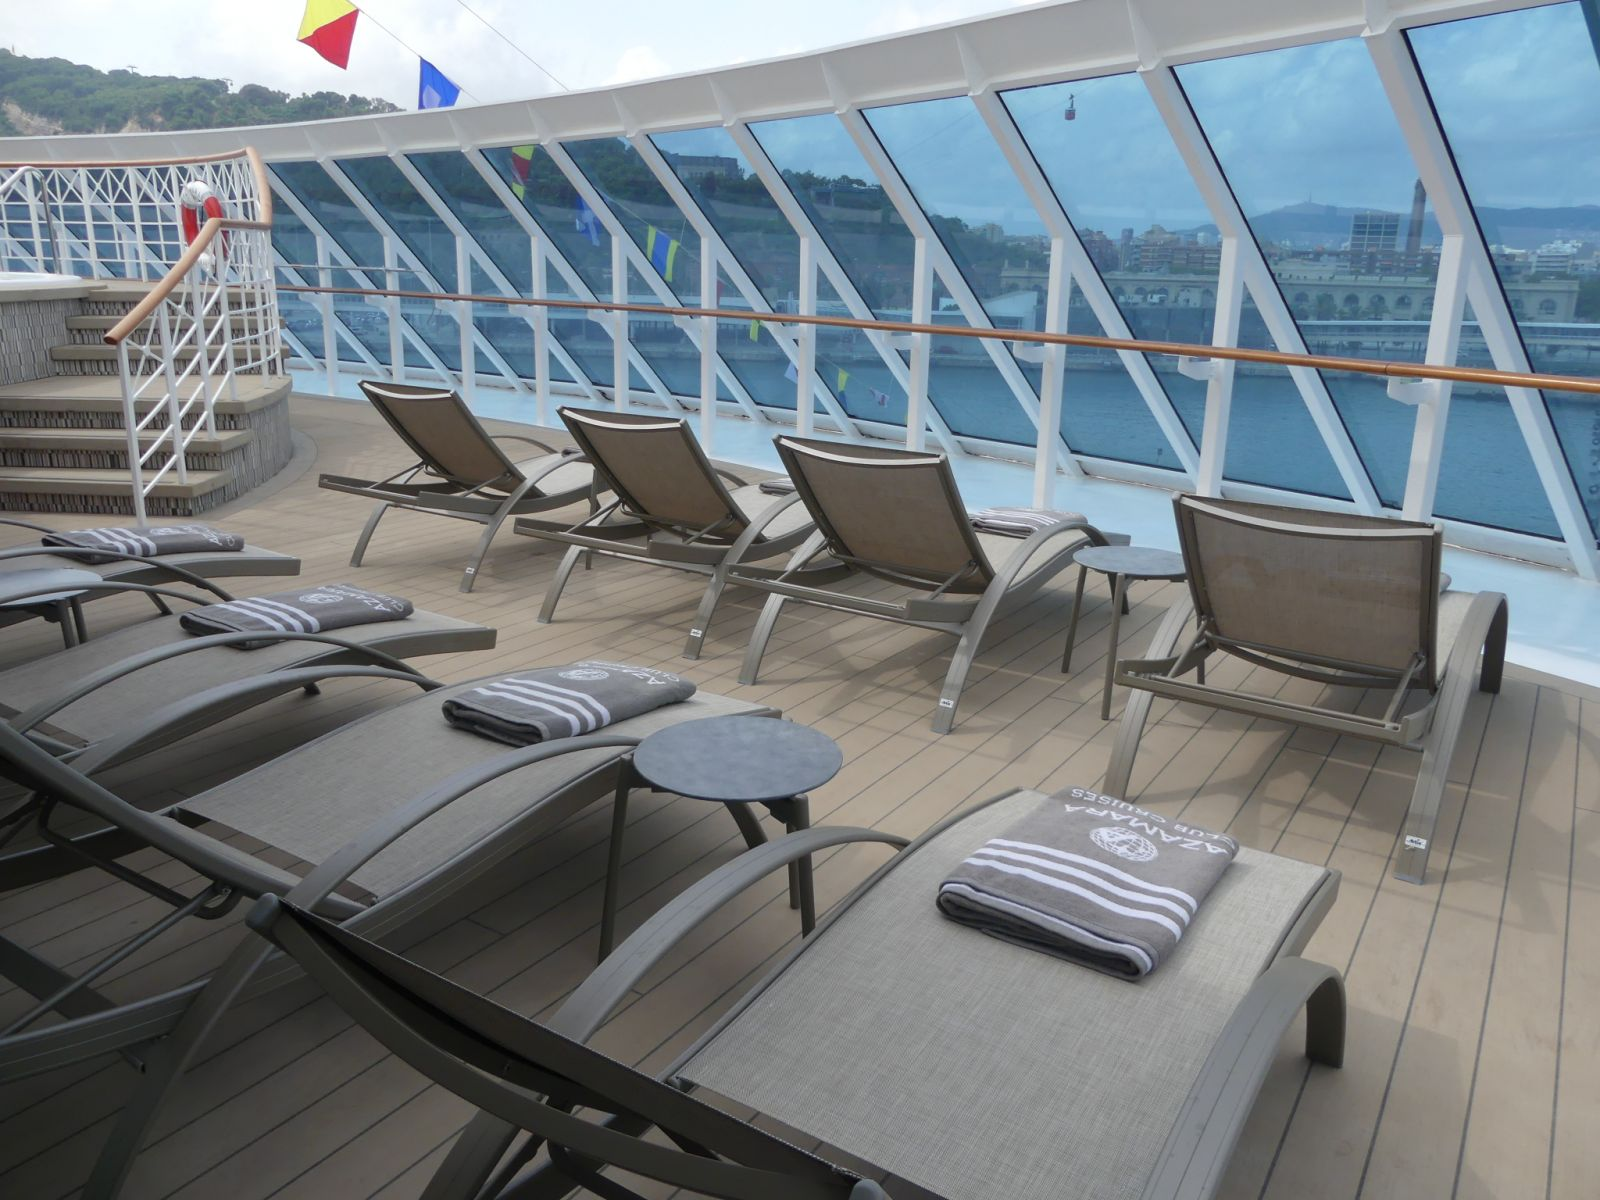 azamara-cruise-lounge-deck